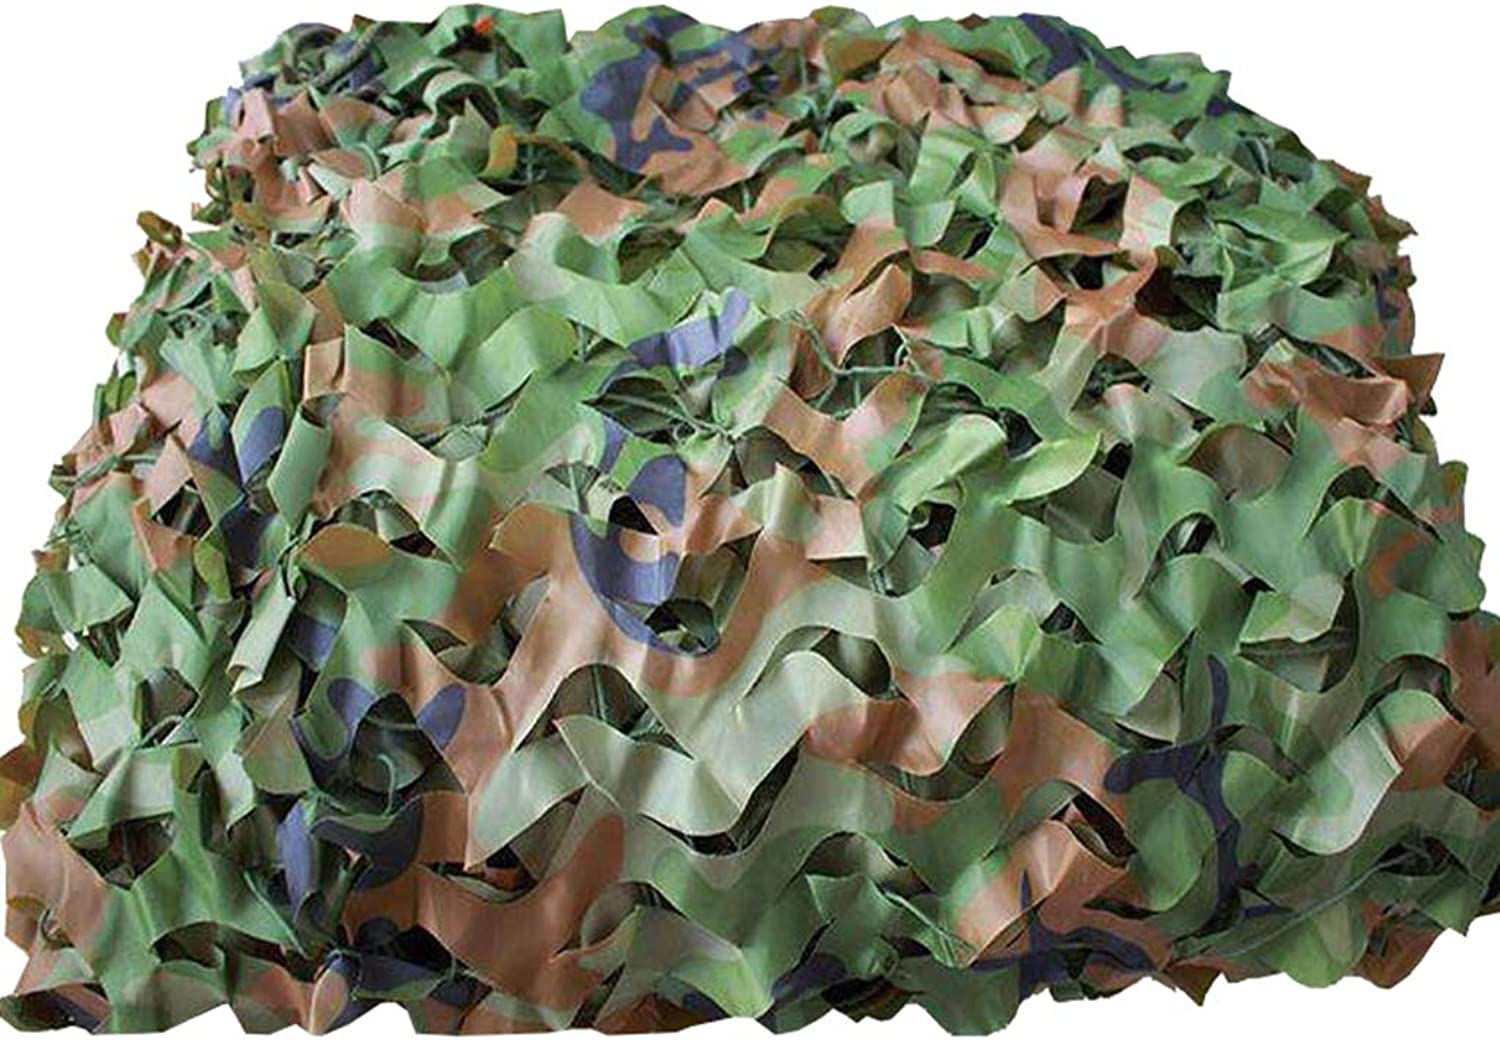 Woodland Camouflage Netting UV Resistant Shade Camo Netting Outdoor Jungle Sunshading Net for Hunting Blind Shooting Camping Hiding Photography Jungle